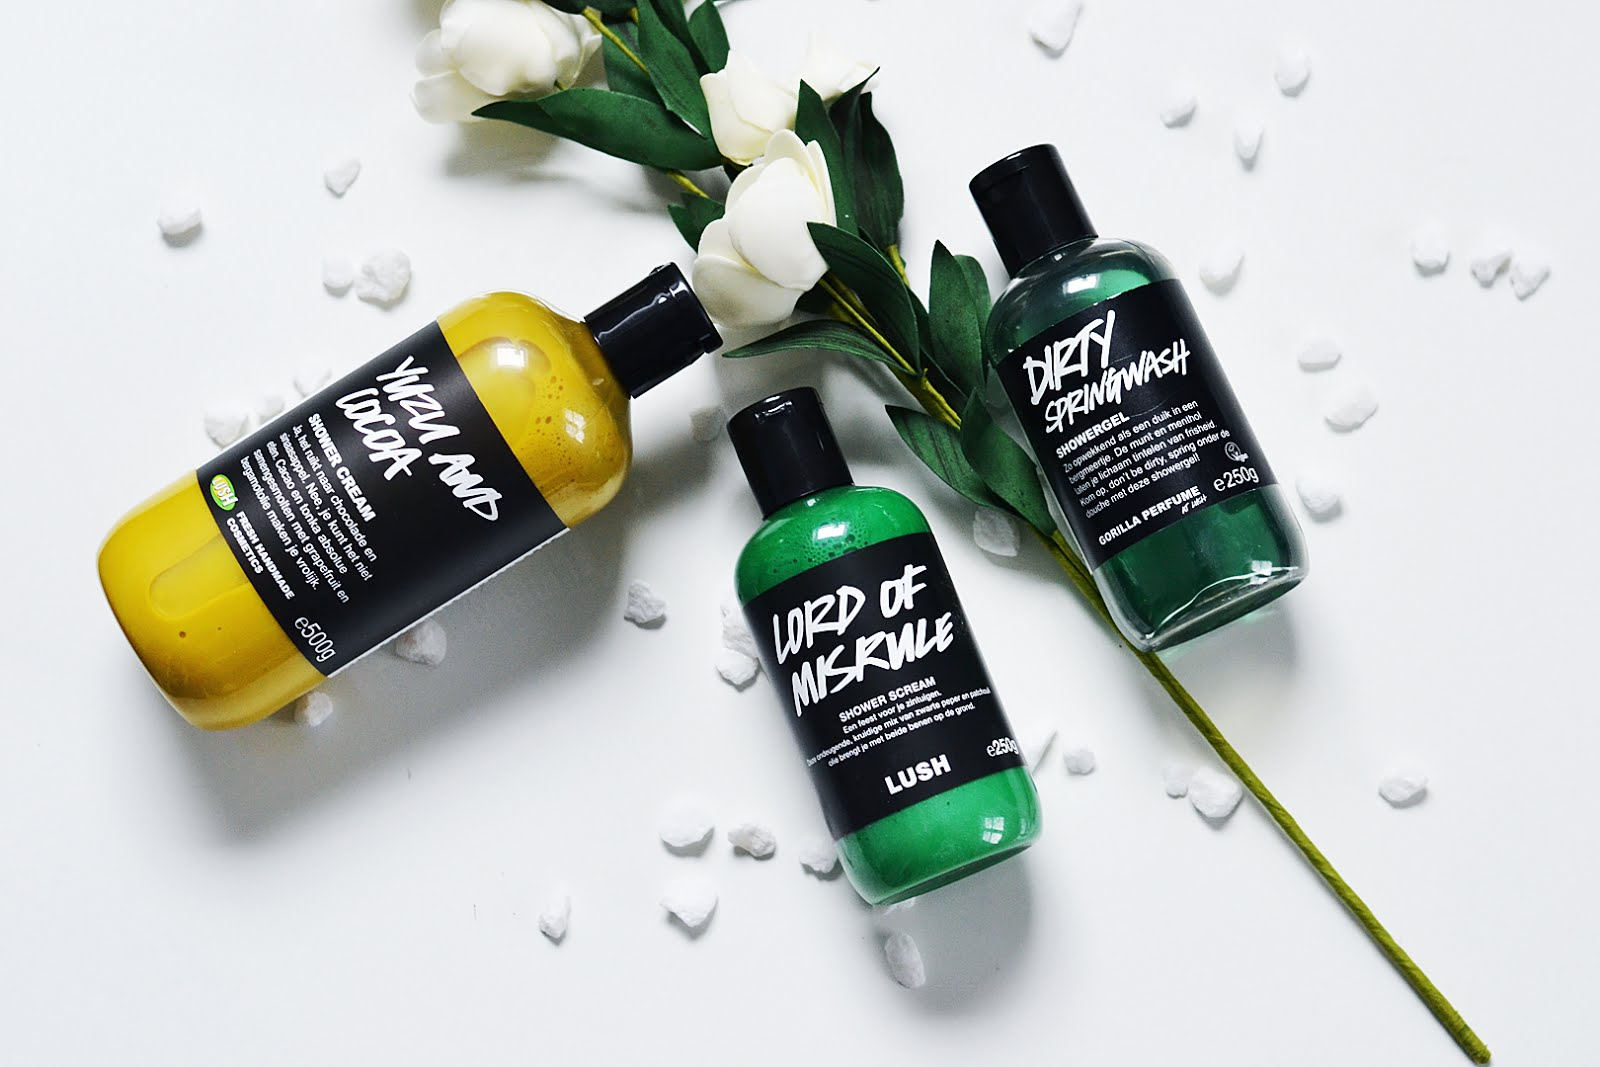 Lush, shower gel, soap, yuzu and cacoa, lord of misrule, dirty springwash, fashion blogger, mode blogger, belgie